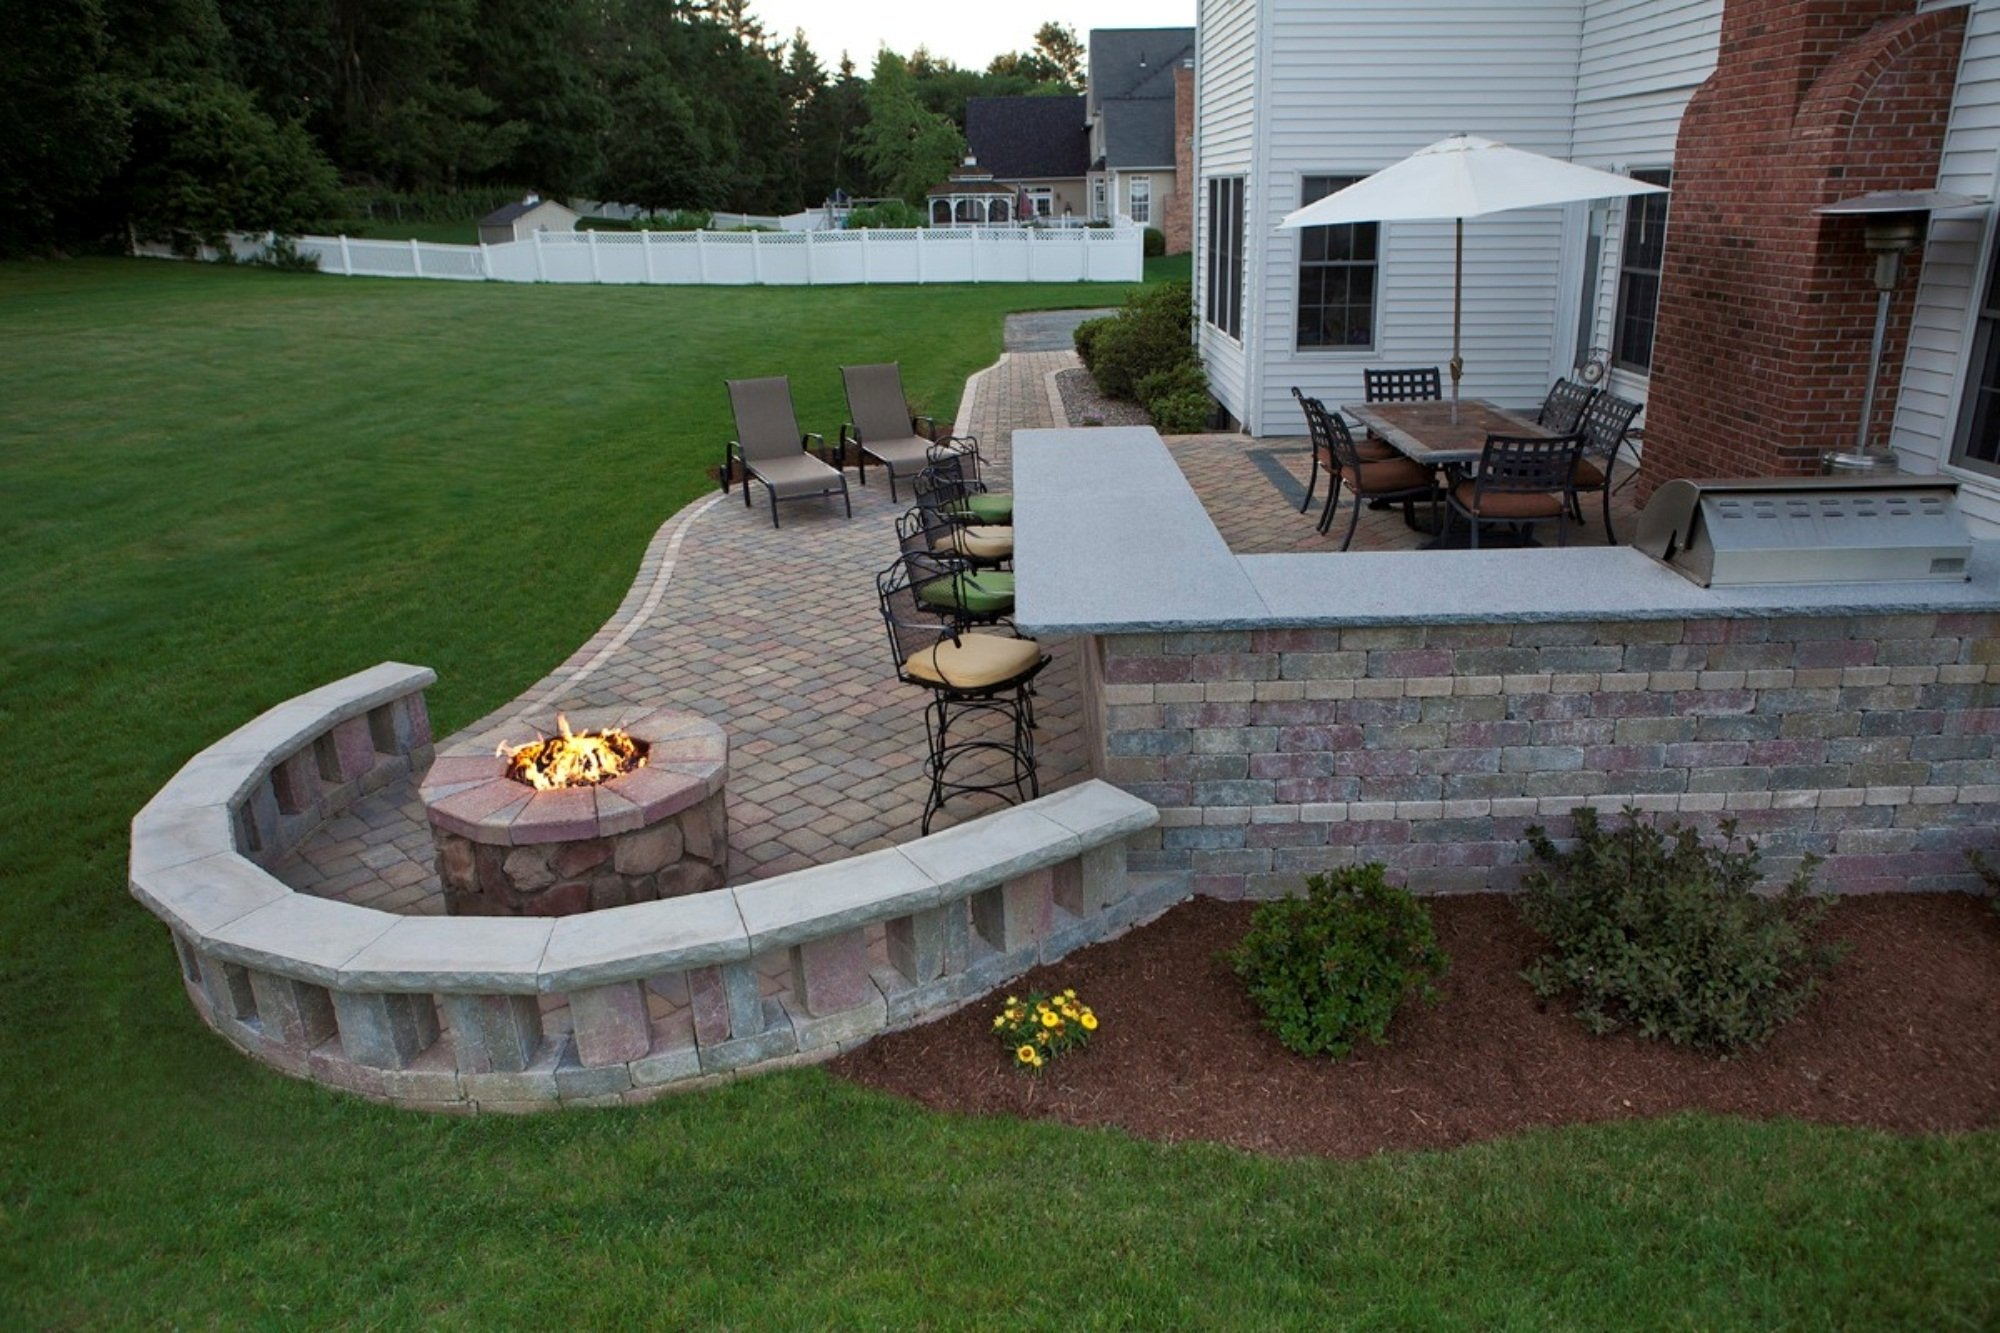 10 Lovely Patio Ideas With Fire Pit interior beautiful patio designs with fire pit 6 outdoor patio